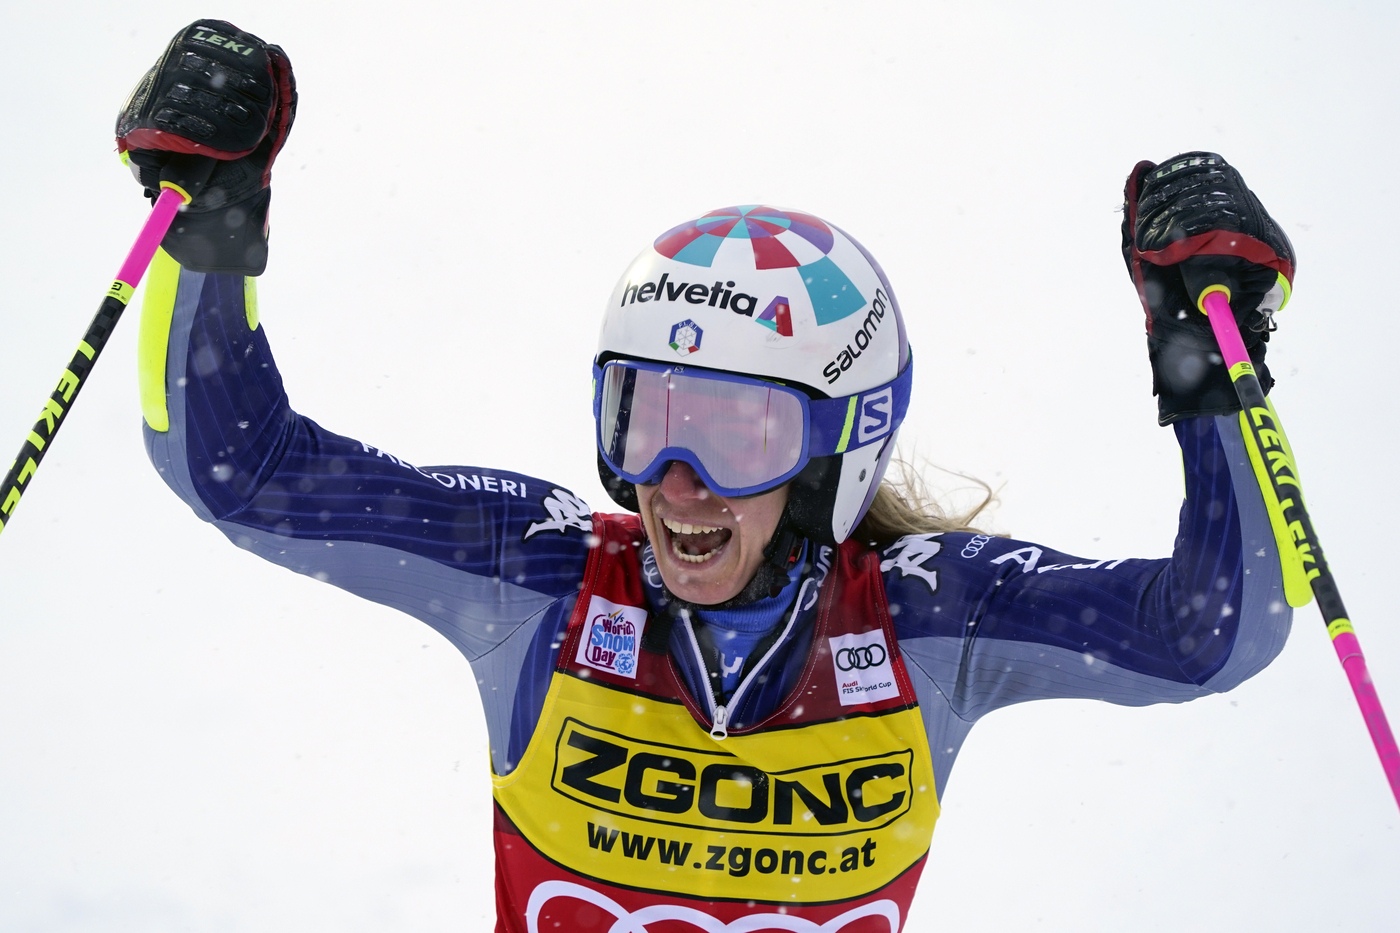 Sci alpino, Slalom Gigante di Coppa del Mondo femminile a Courchevel